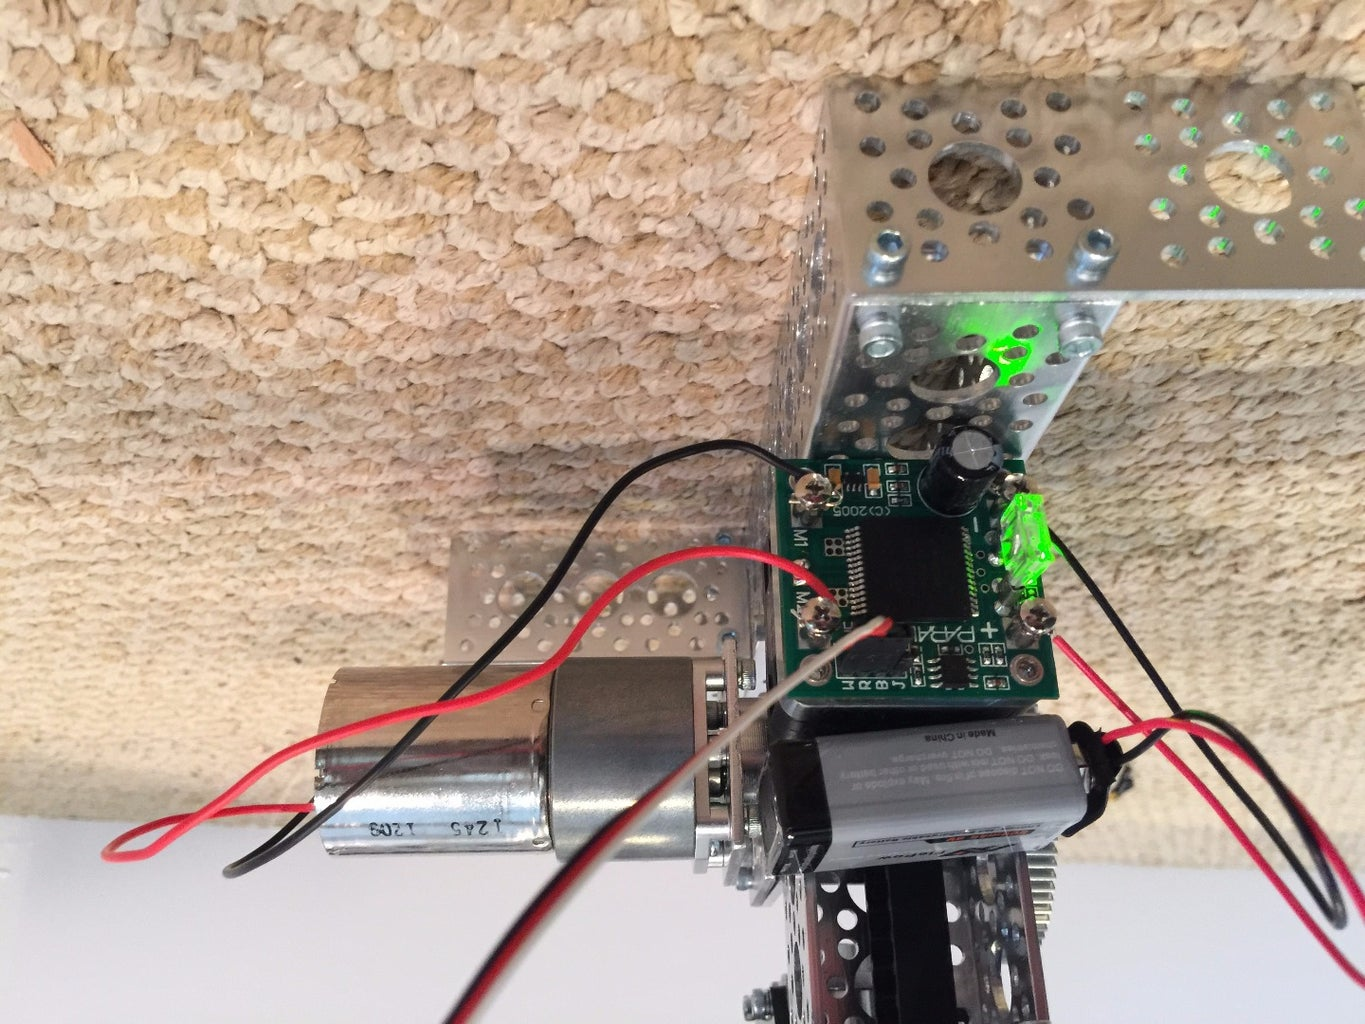 Install the Electronics and Wiring.